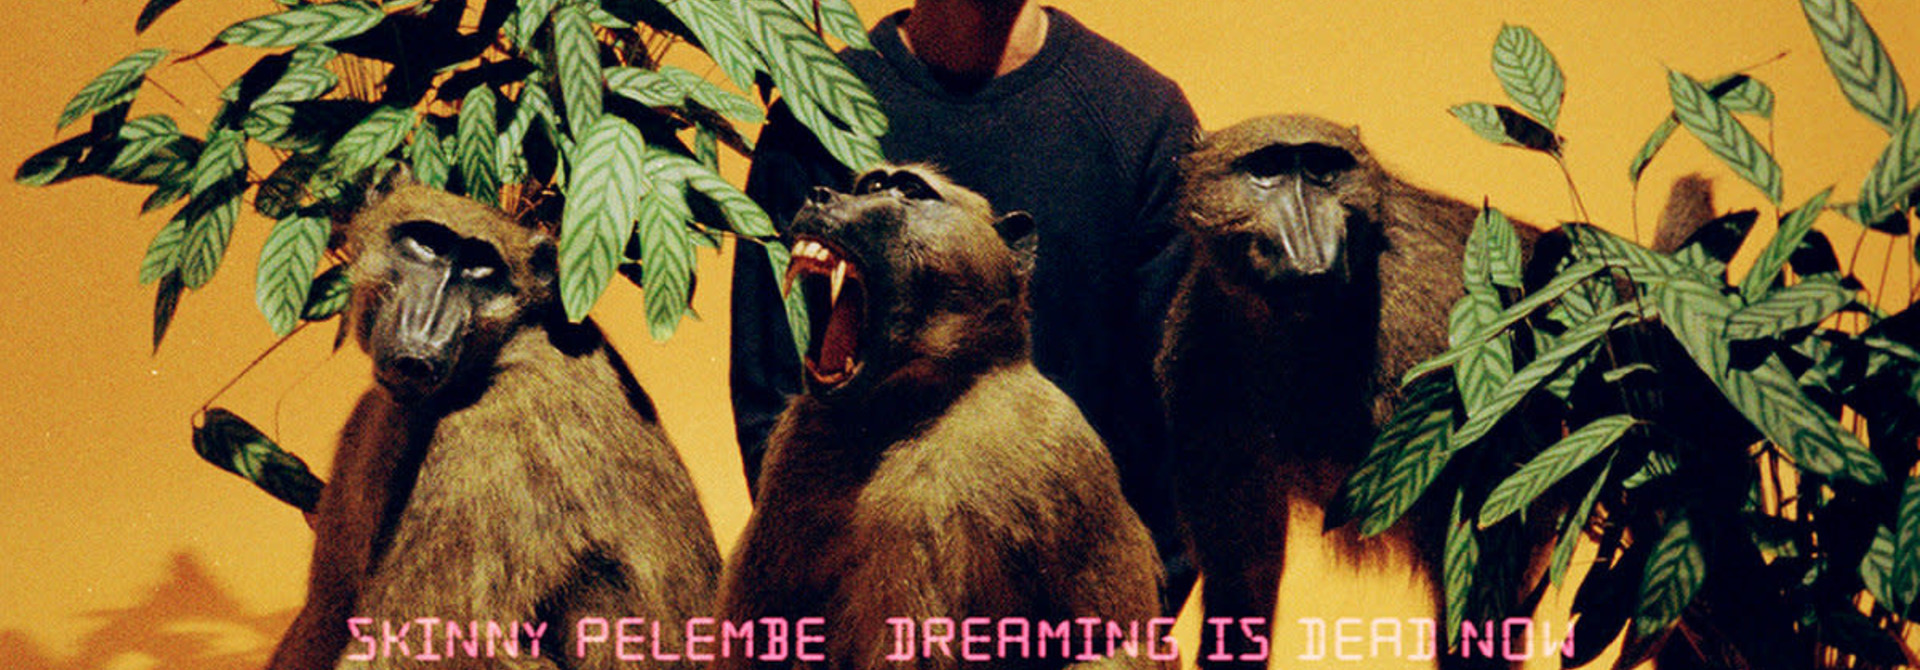 Skinny Pelembre • Dreaming Is Dead Now